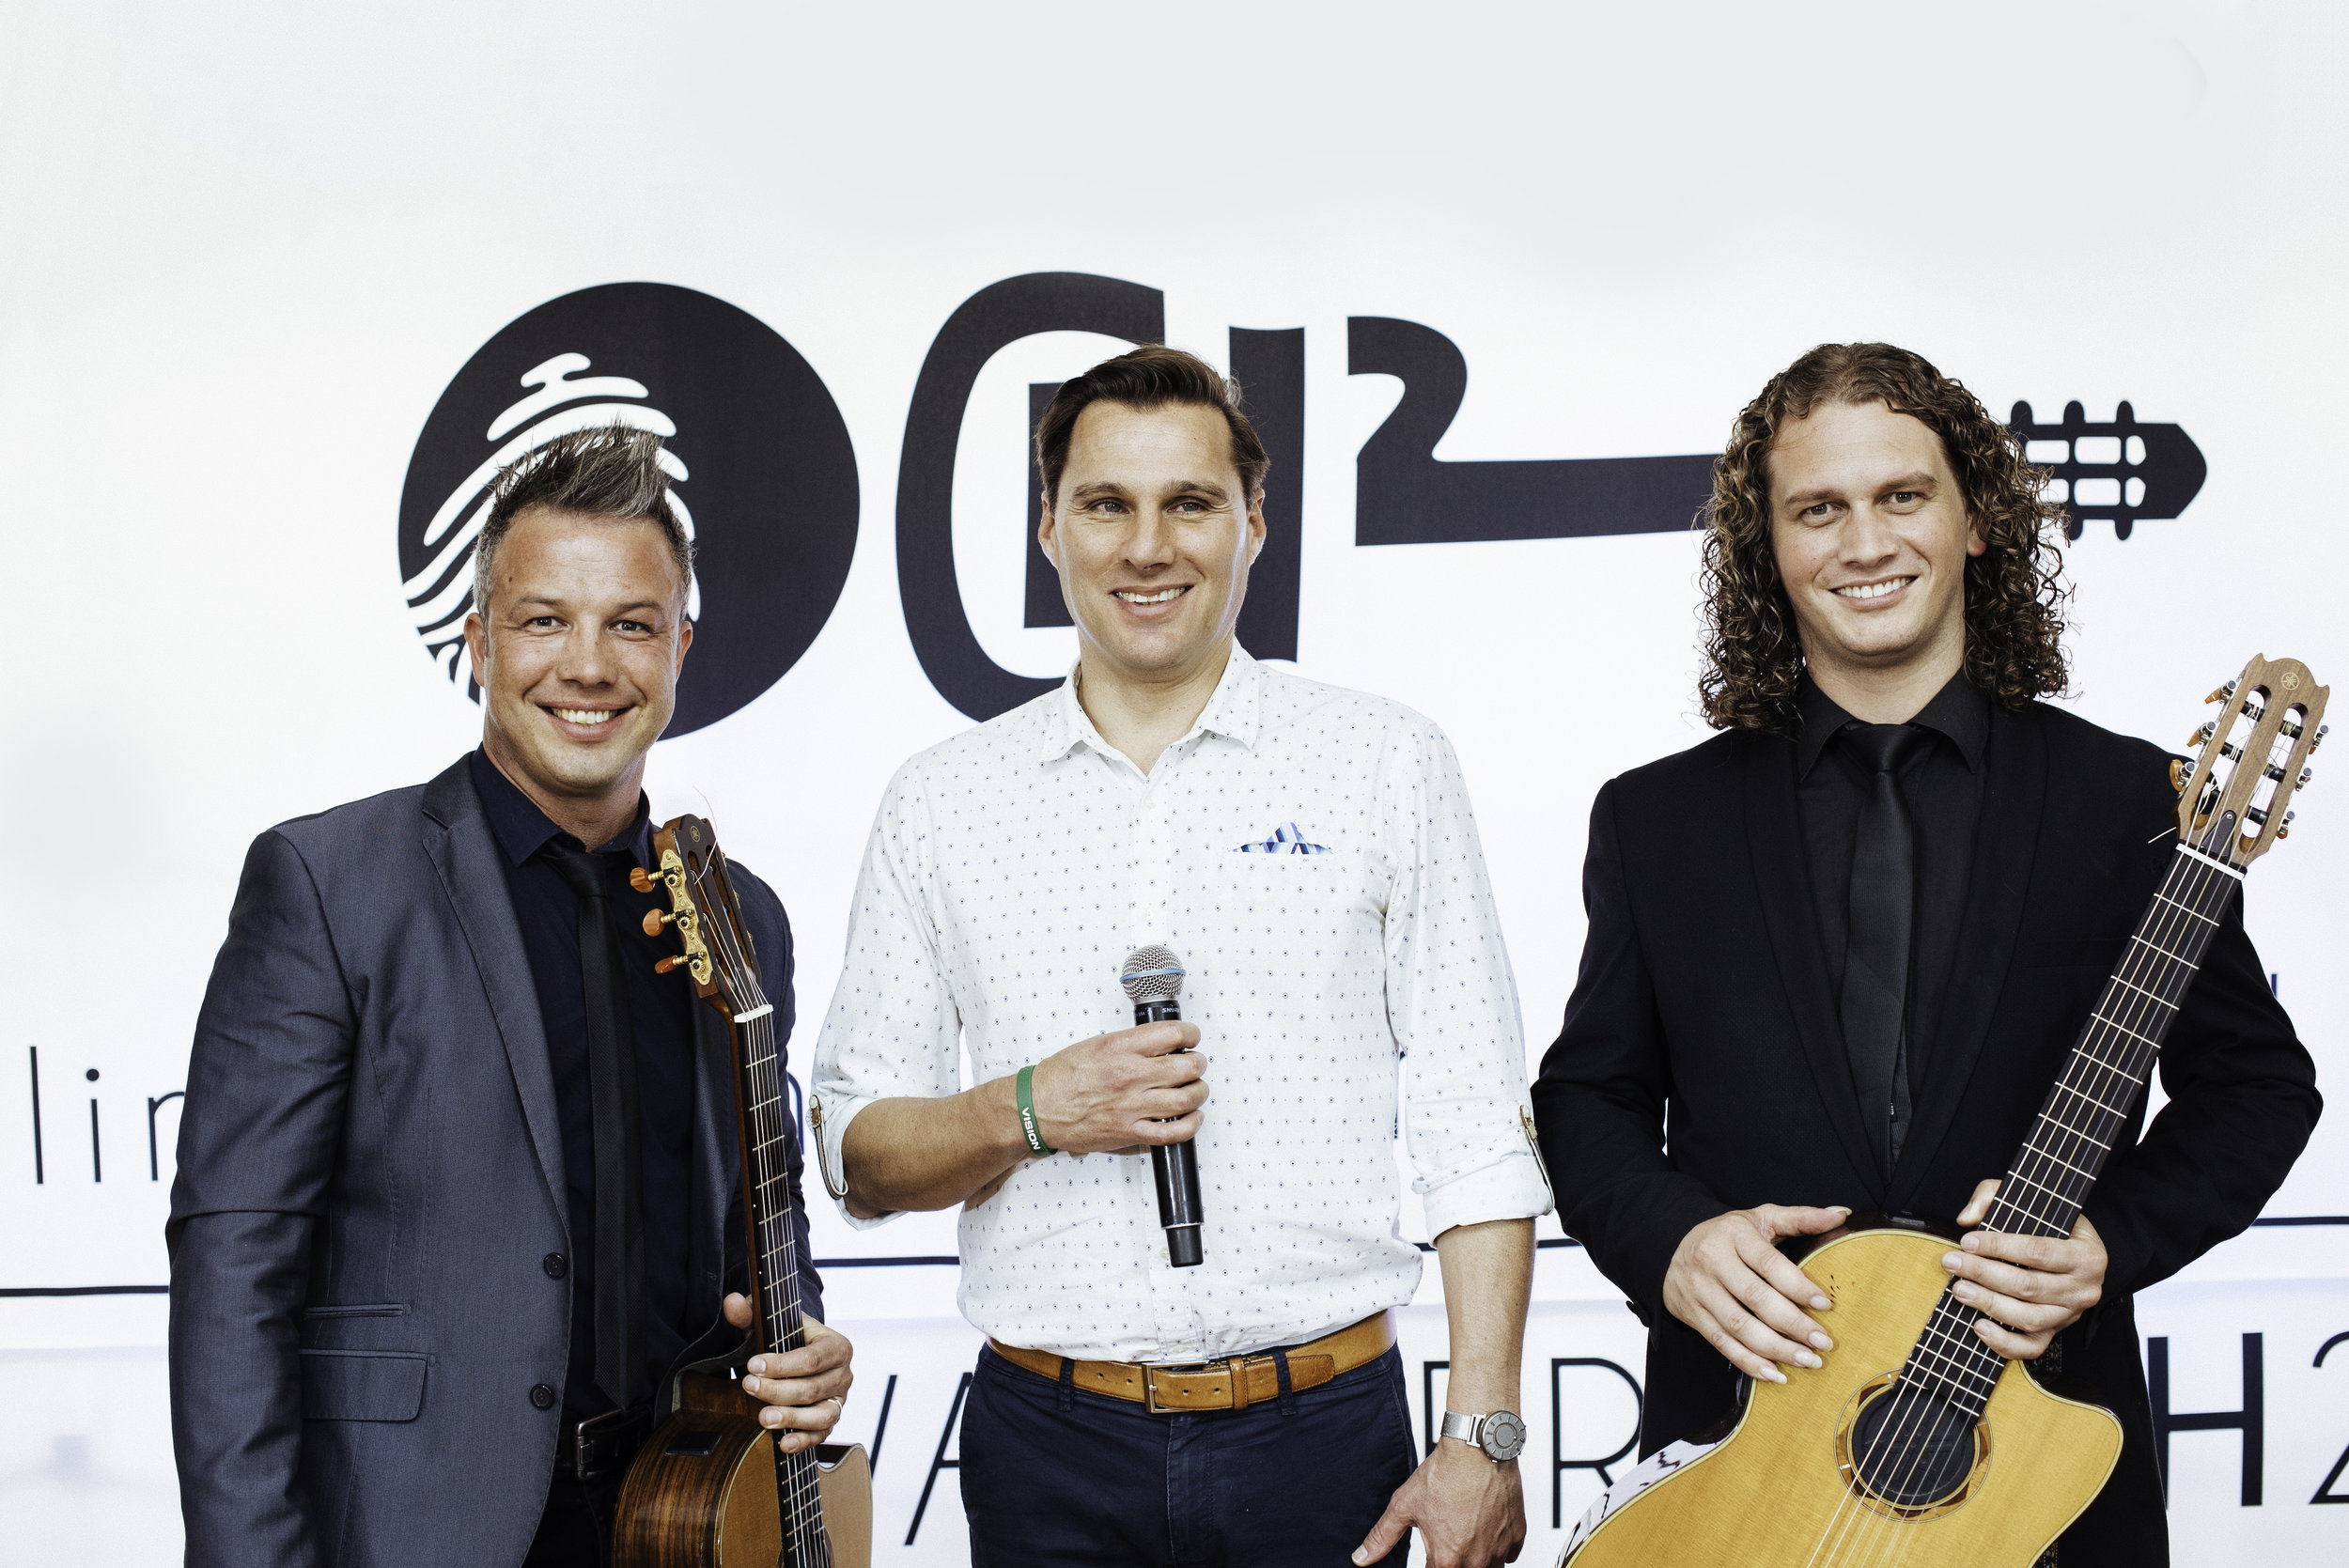 Image of Hein standing in the middle of the band CH2. On the left is Corneille and on the right is Dirkie.